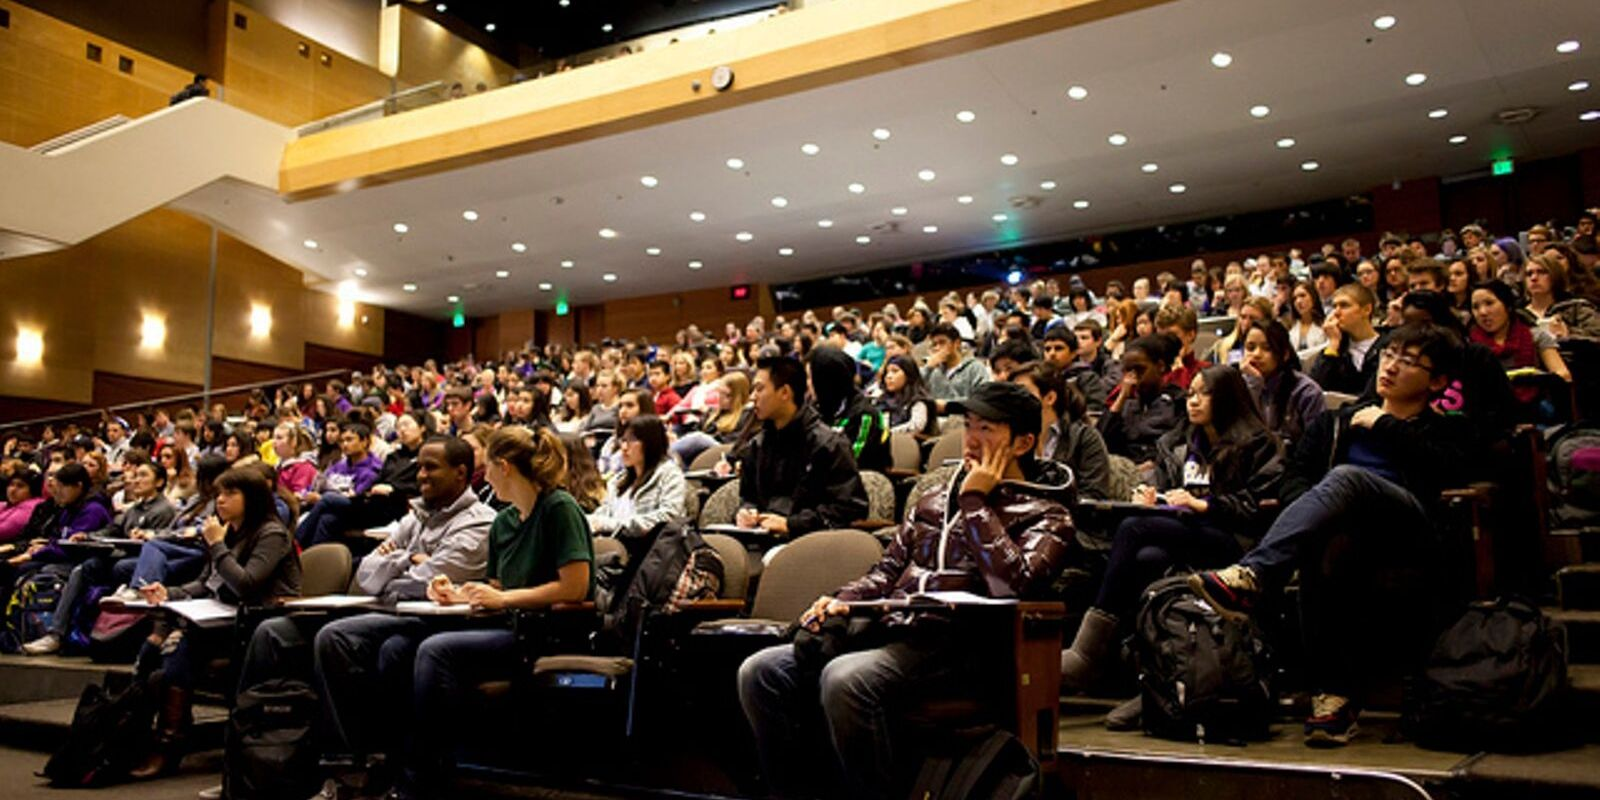 Equity and diversity initiatives in universities serve ideological ends: Campus Freedom Index